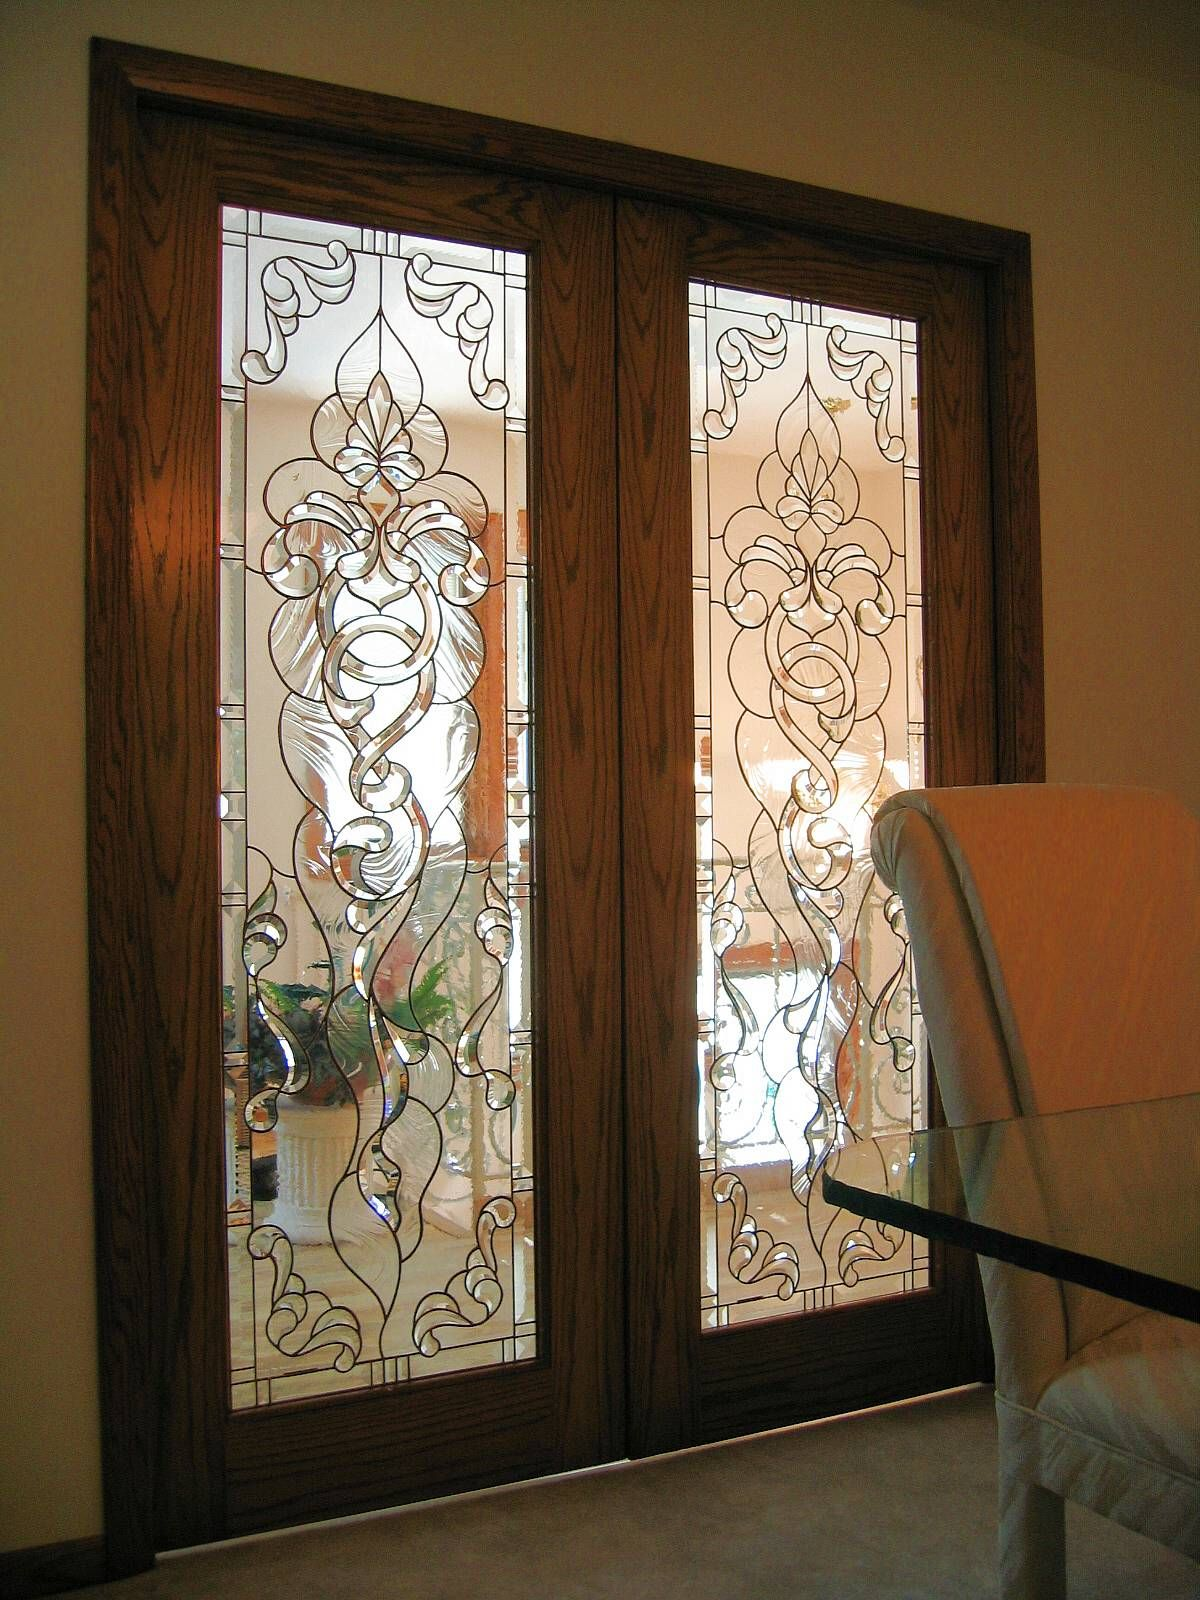 Stained glass pocket doors - Custom Stained Glass Pocket Doors Made By Artist Kim P Kostuch At Studio One Art